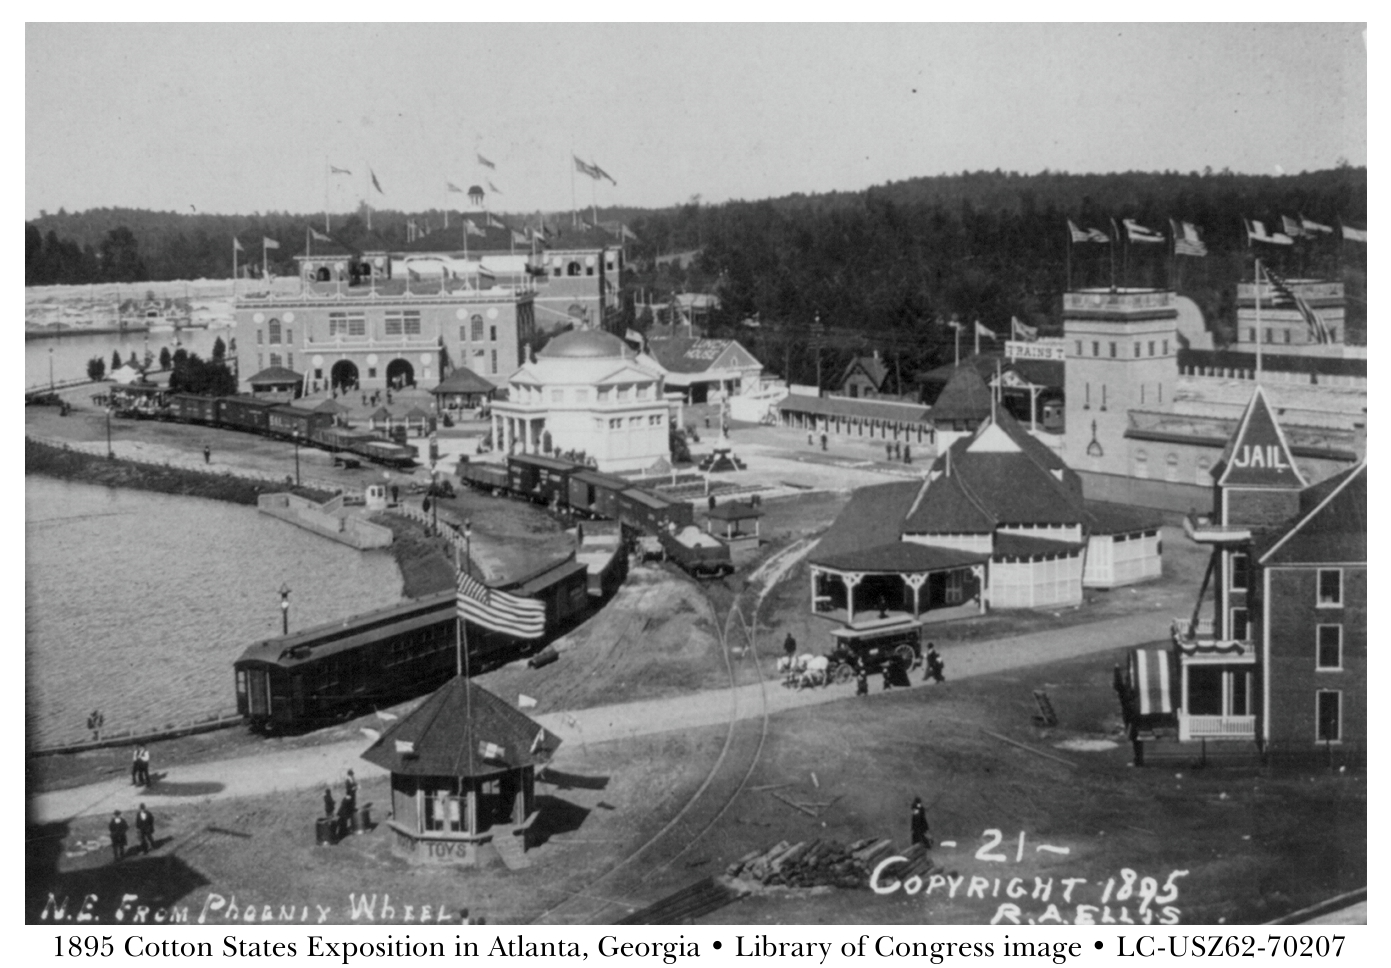 1895 Cotton States and International Exposition in Atlanta, Georgia - from Library of Congress image LC-USZ62-70207